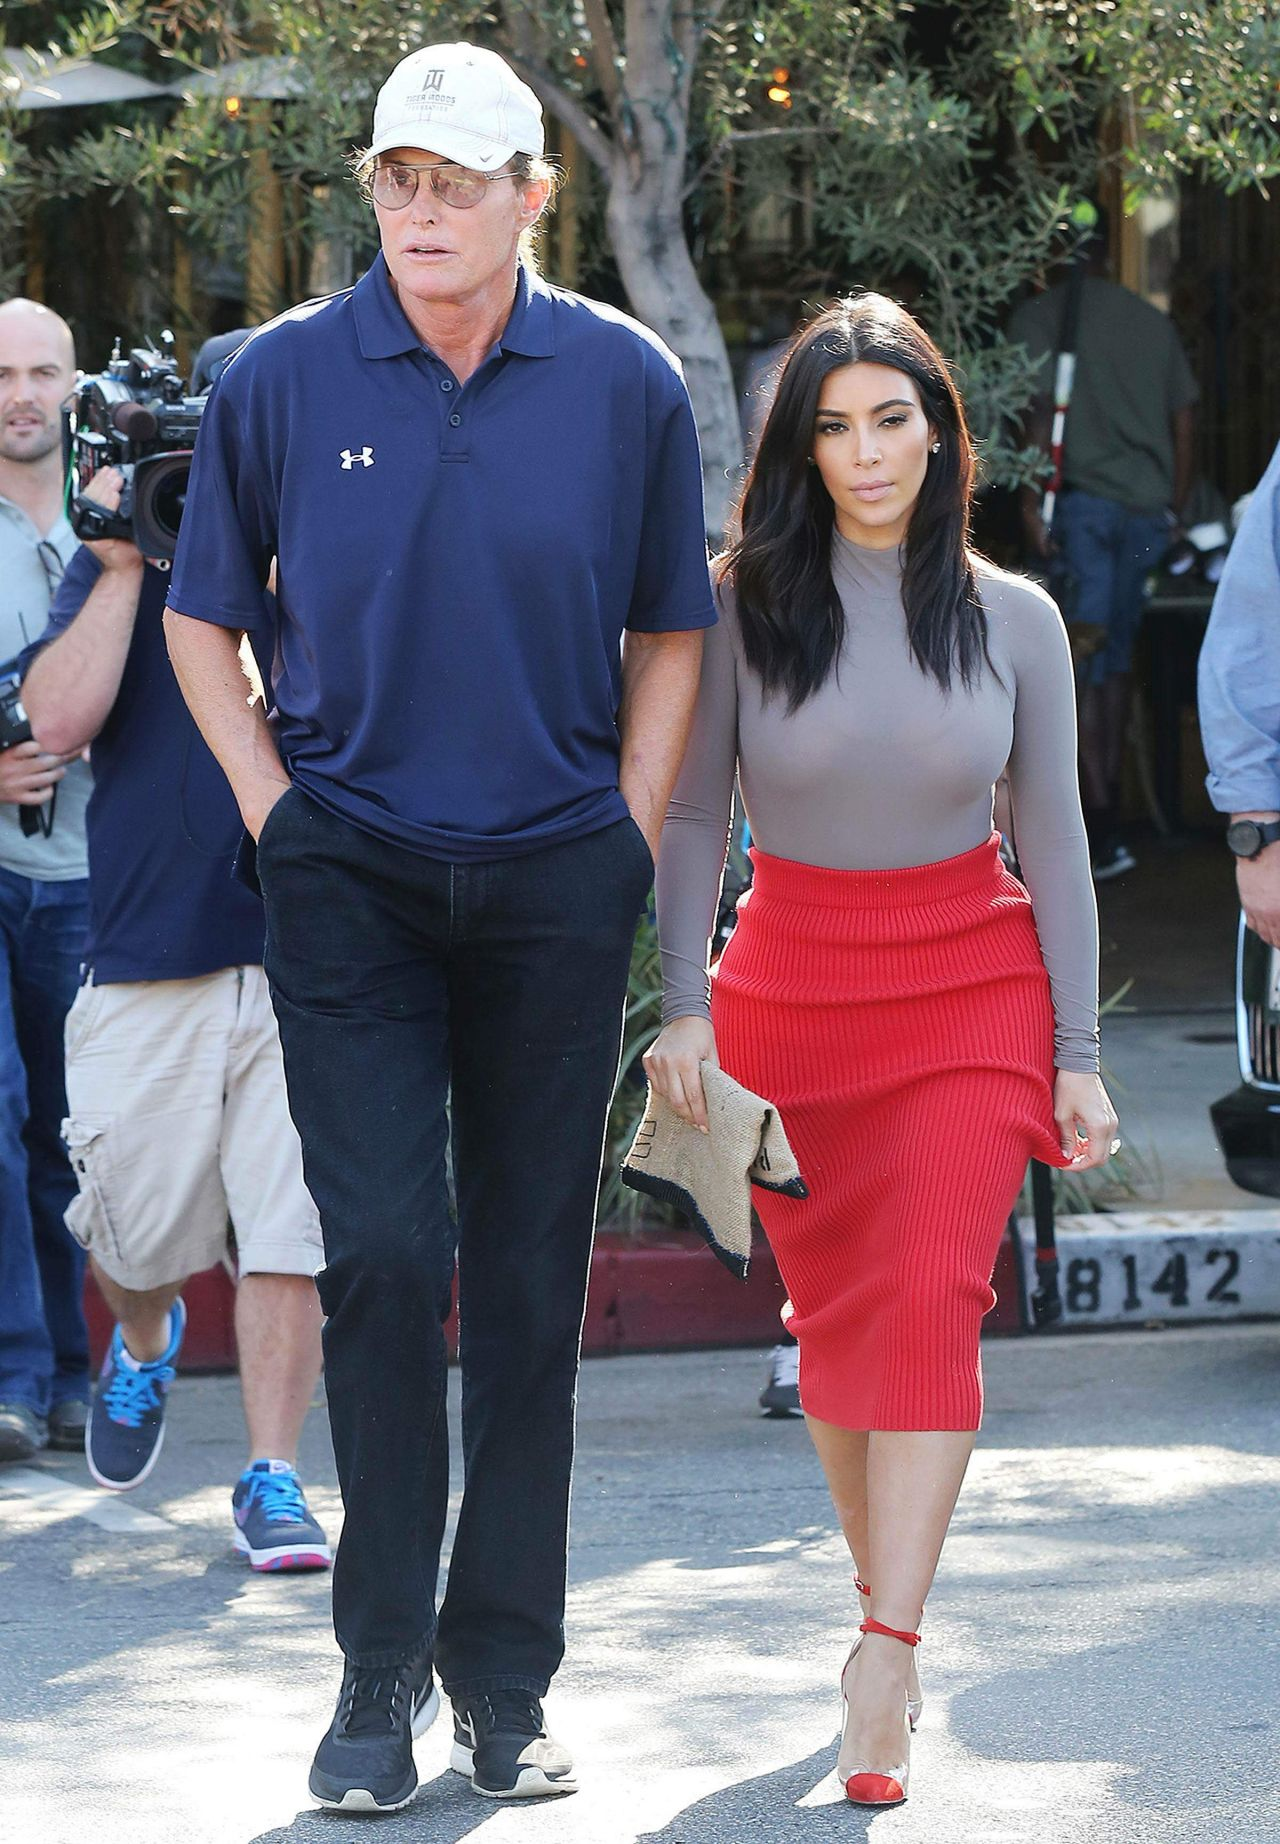 How Did Kim Kardashian React To Bruce Jenner's Transition?